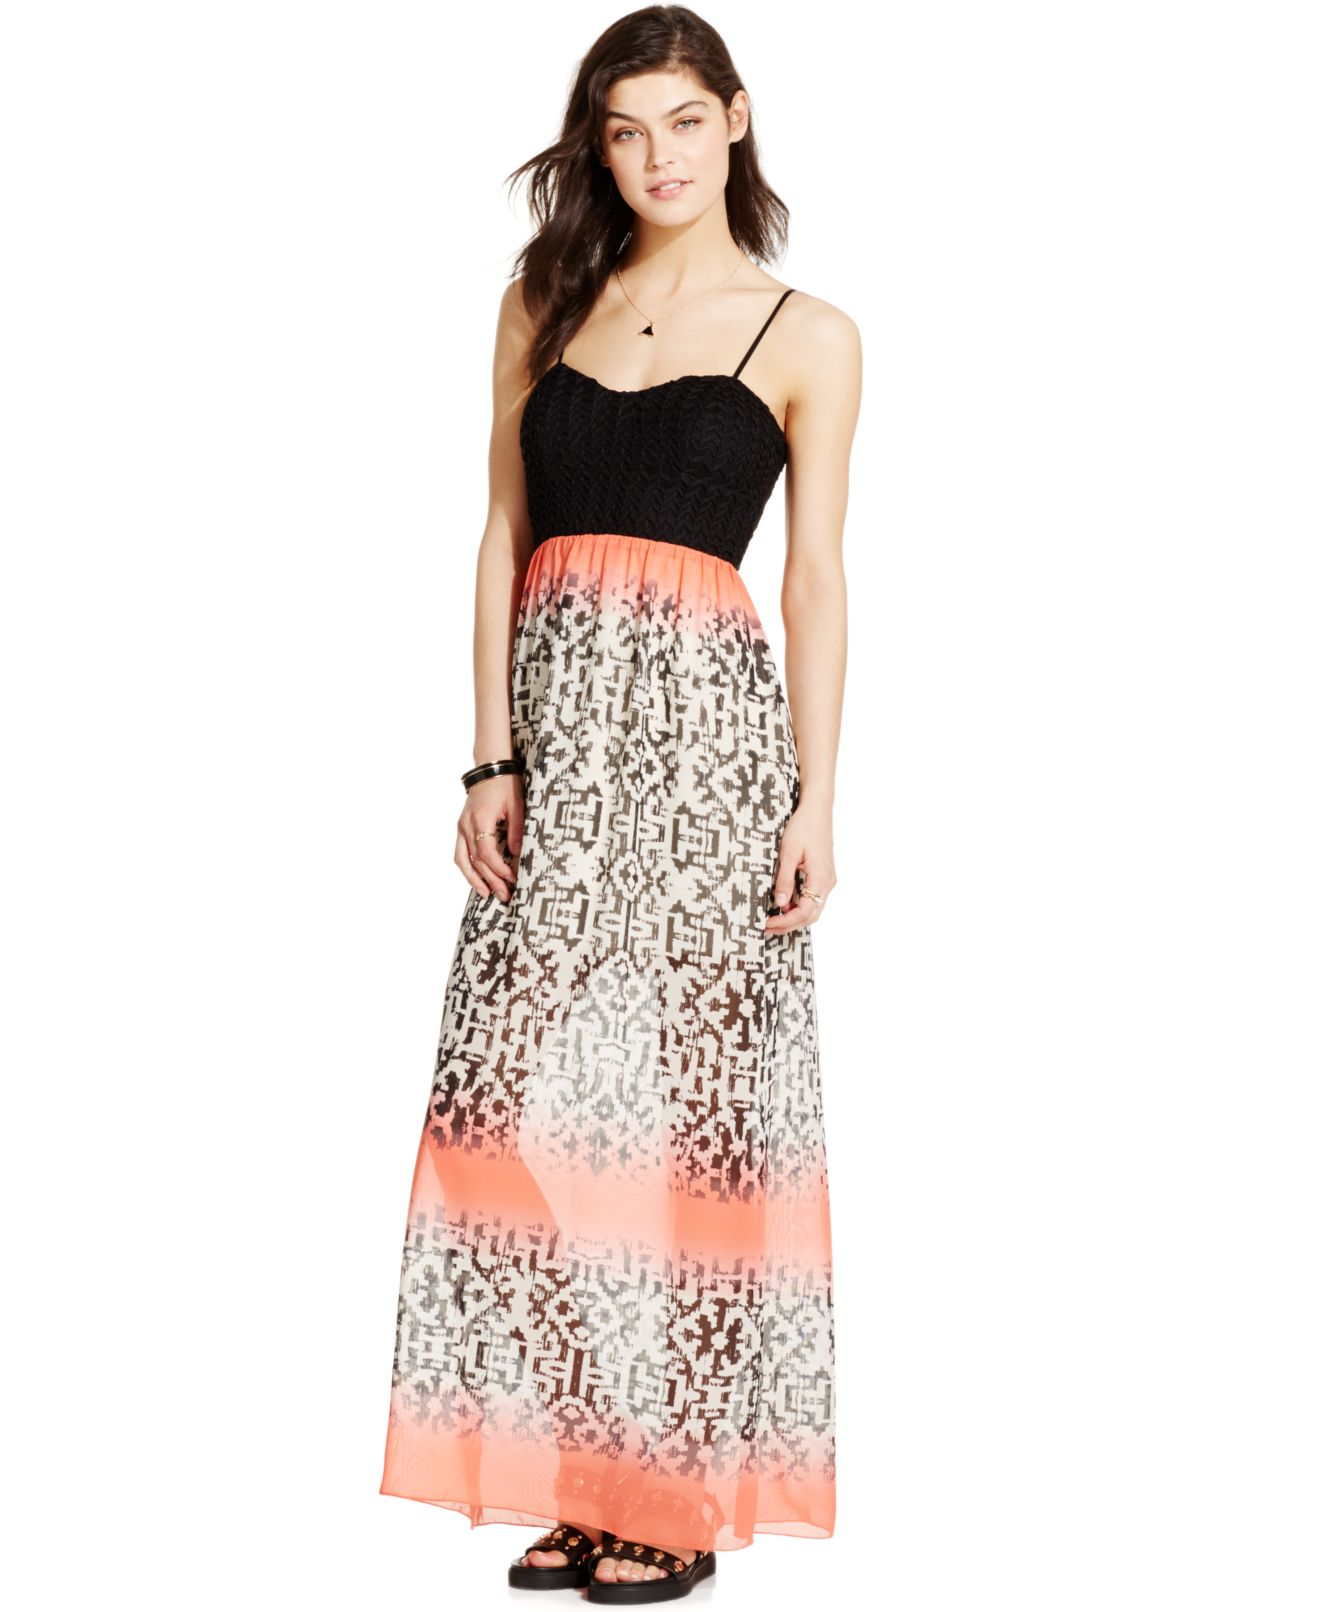 There are so many occasions that require fabulous juniors' dresses, especially in high school and college. In addition to Homecoming, Prom, and various other dances, there's always a party, a dinner, a networking event, or another activity that calls for a stunning dress.